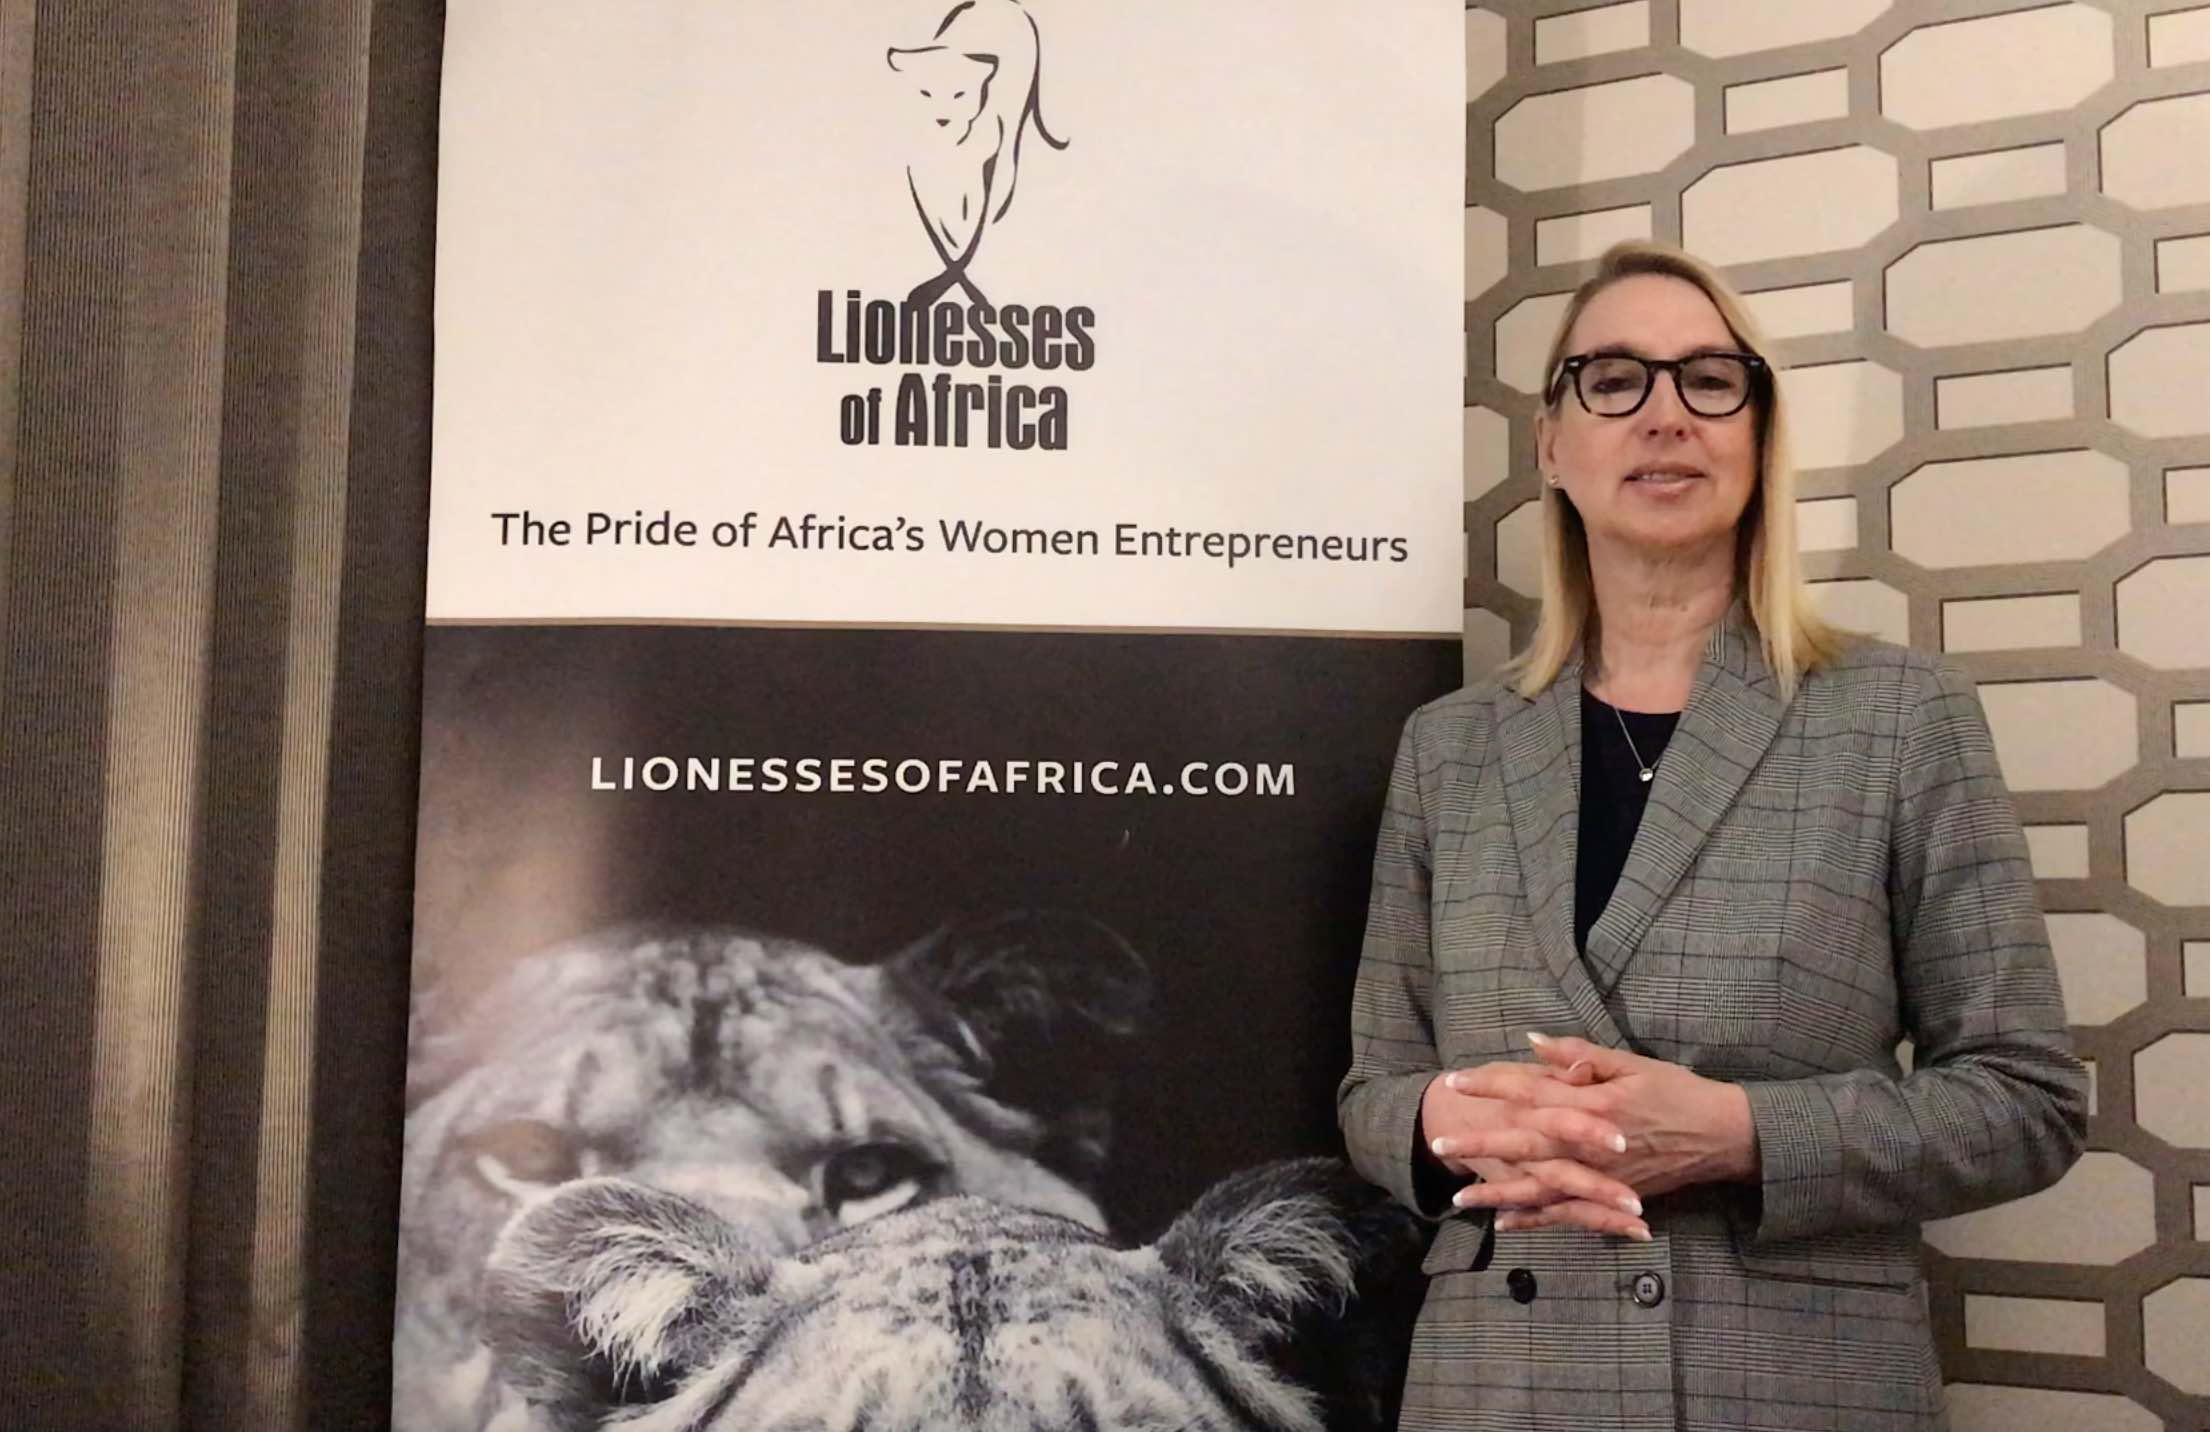 Melanie Hawken, founder & CEO of Lionesses of Africa